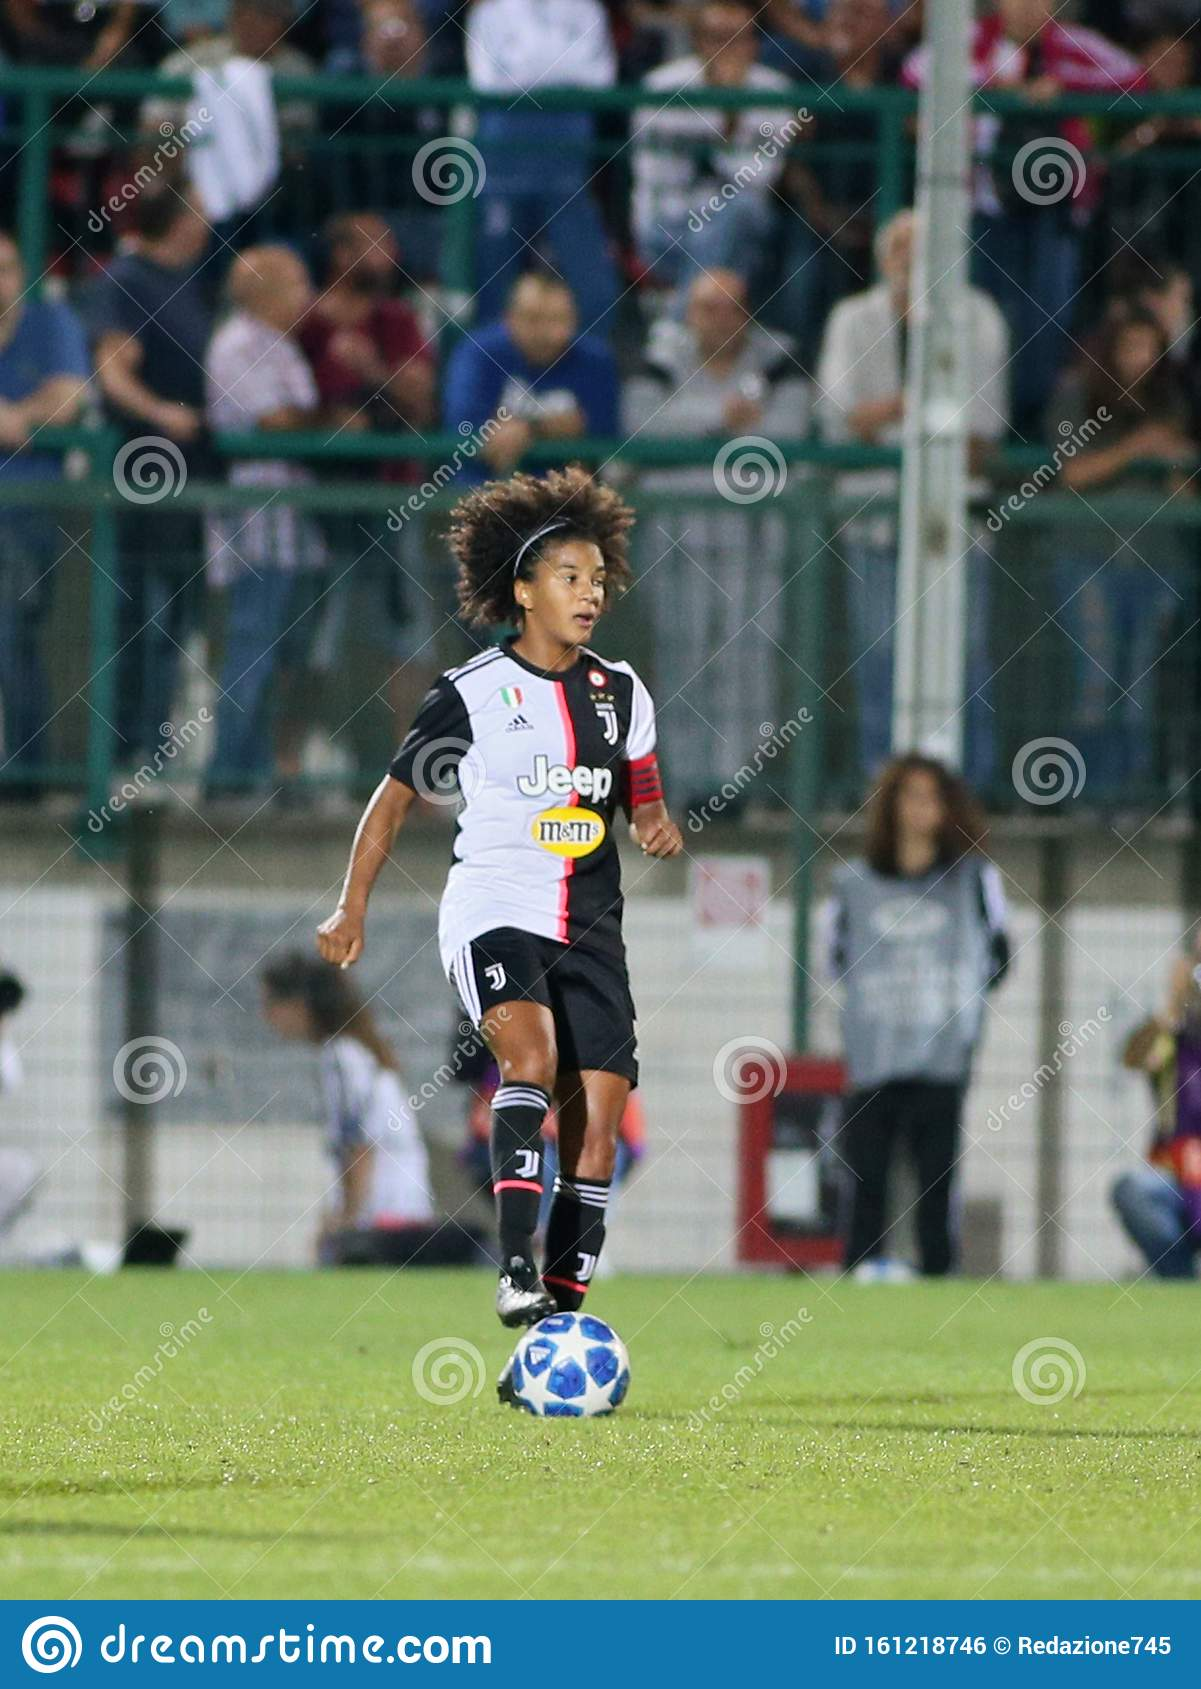 soccer champions league women juventus women vs barcellona editorial photo image of sara italy 161218746 dreamstime com